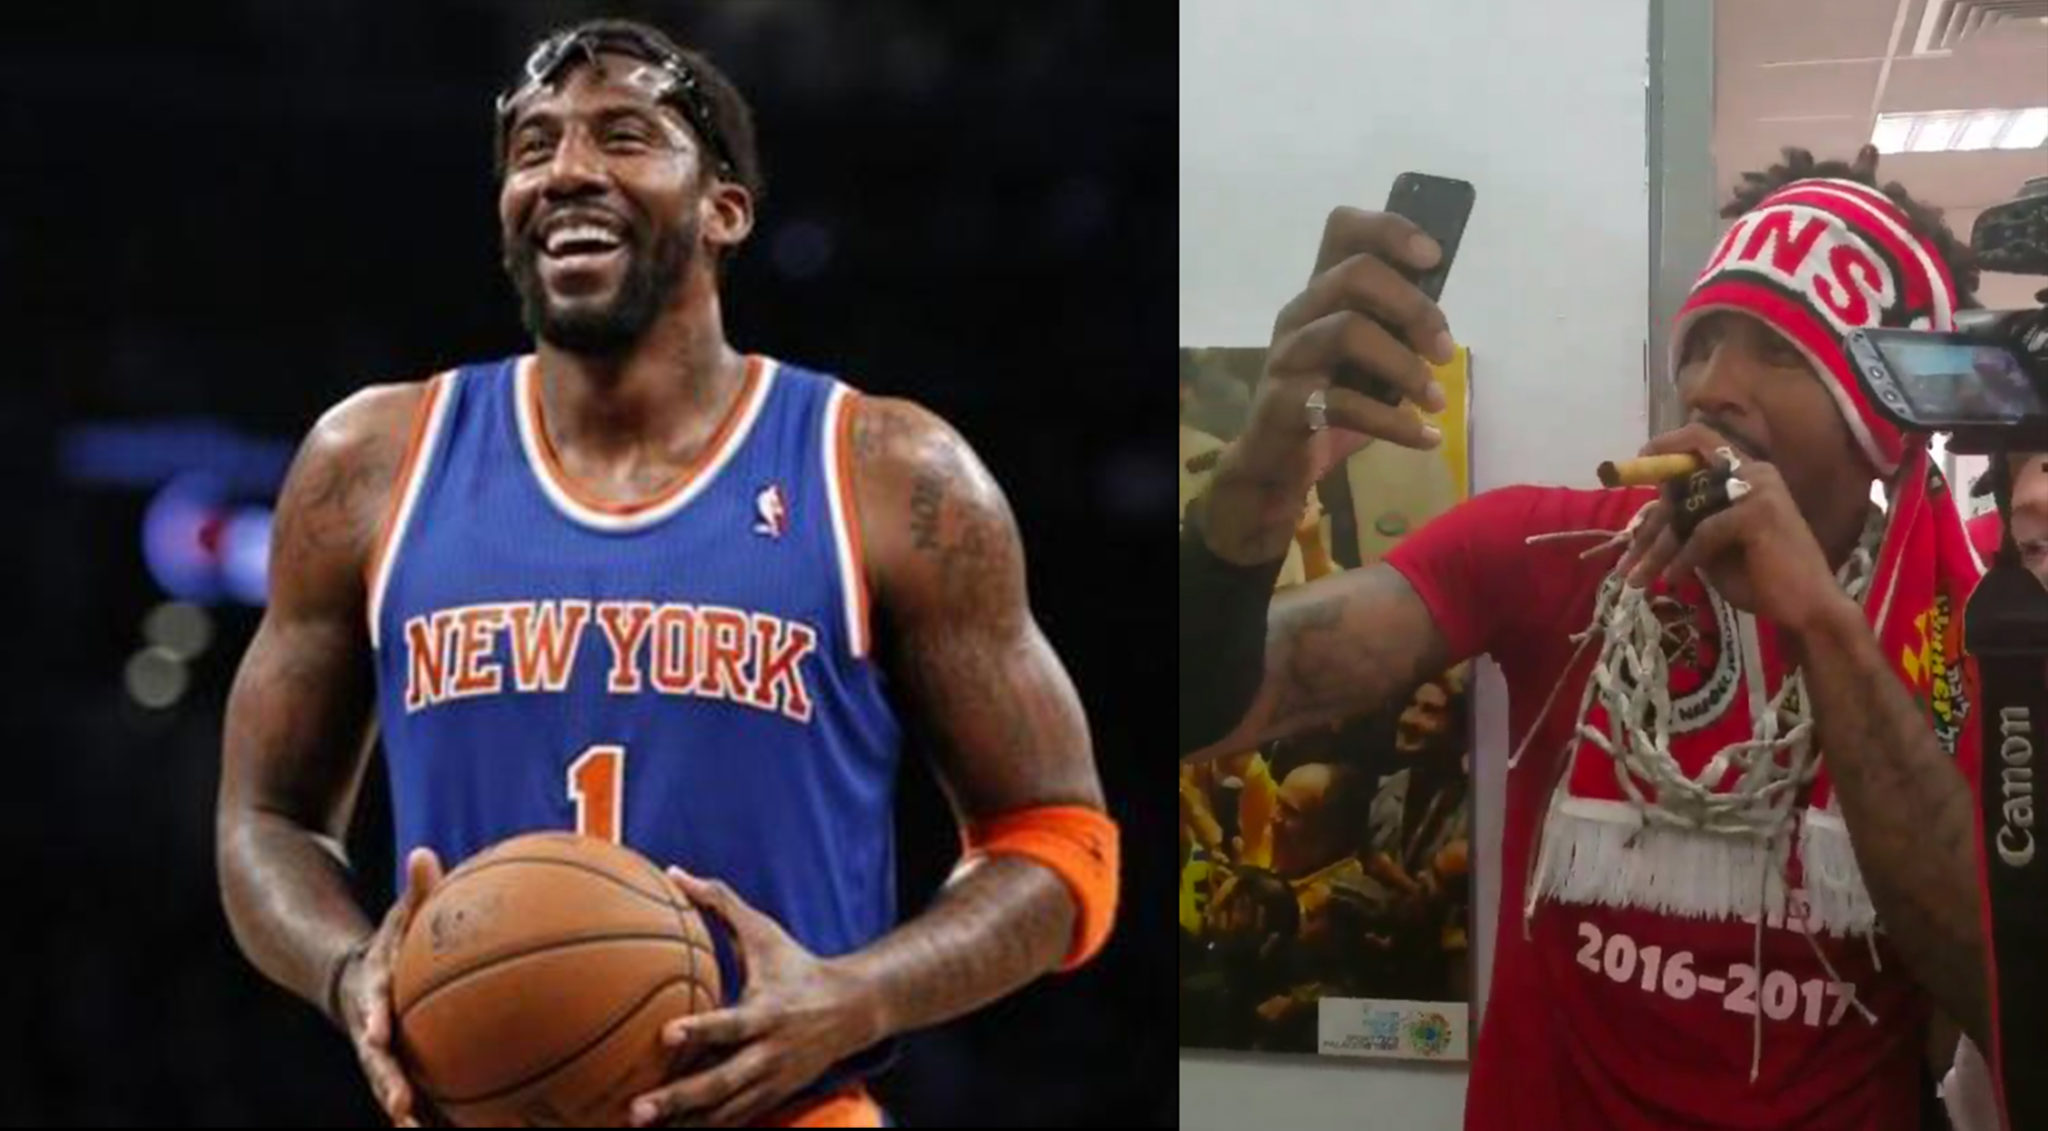 Amare Stoudemire could return to nba knicks after israel win